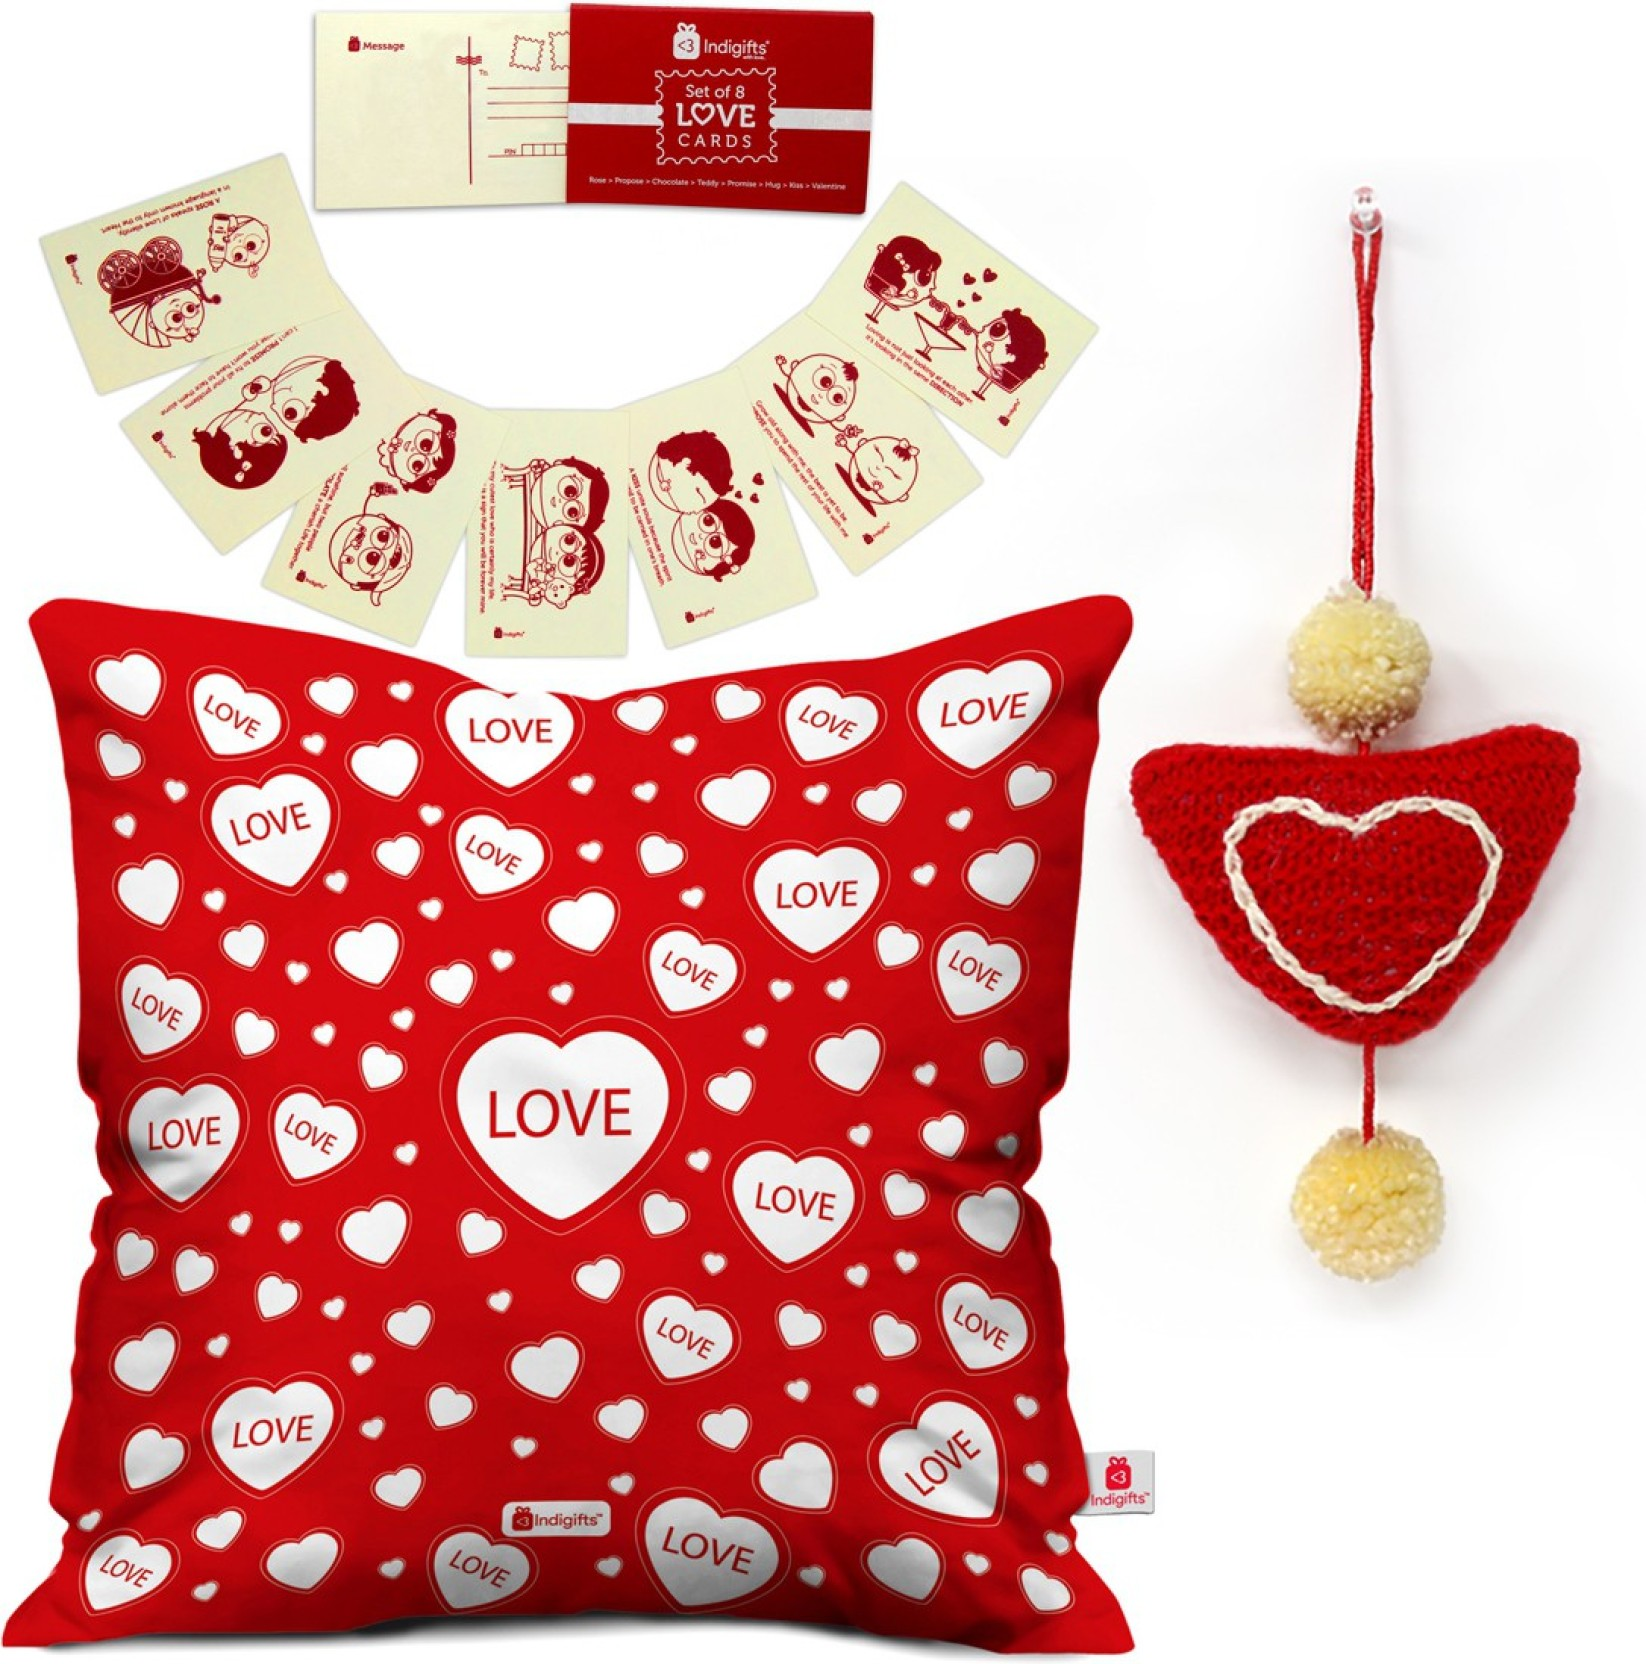 indi ts Love Hearts Seamless Pattern D CM067 LOV Cushion